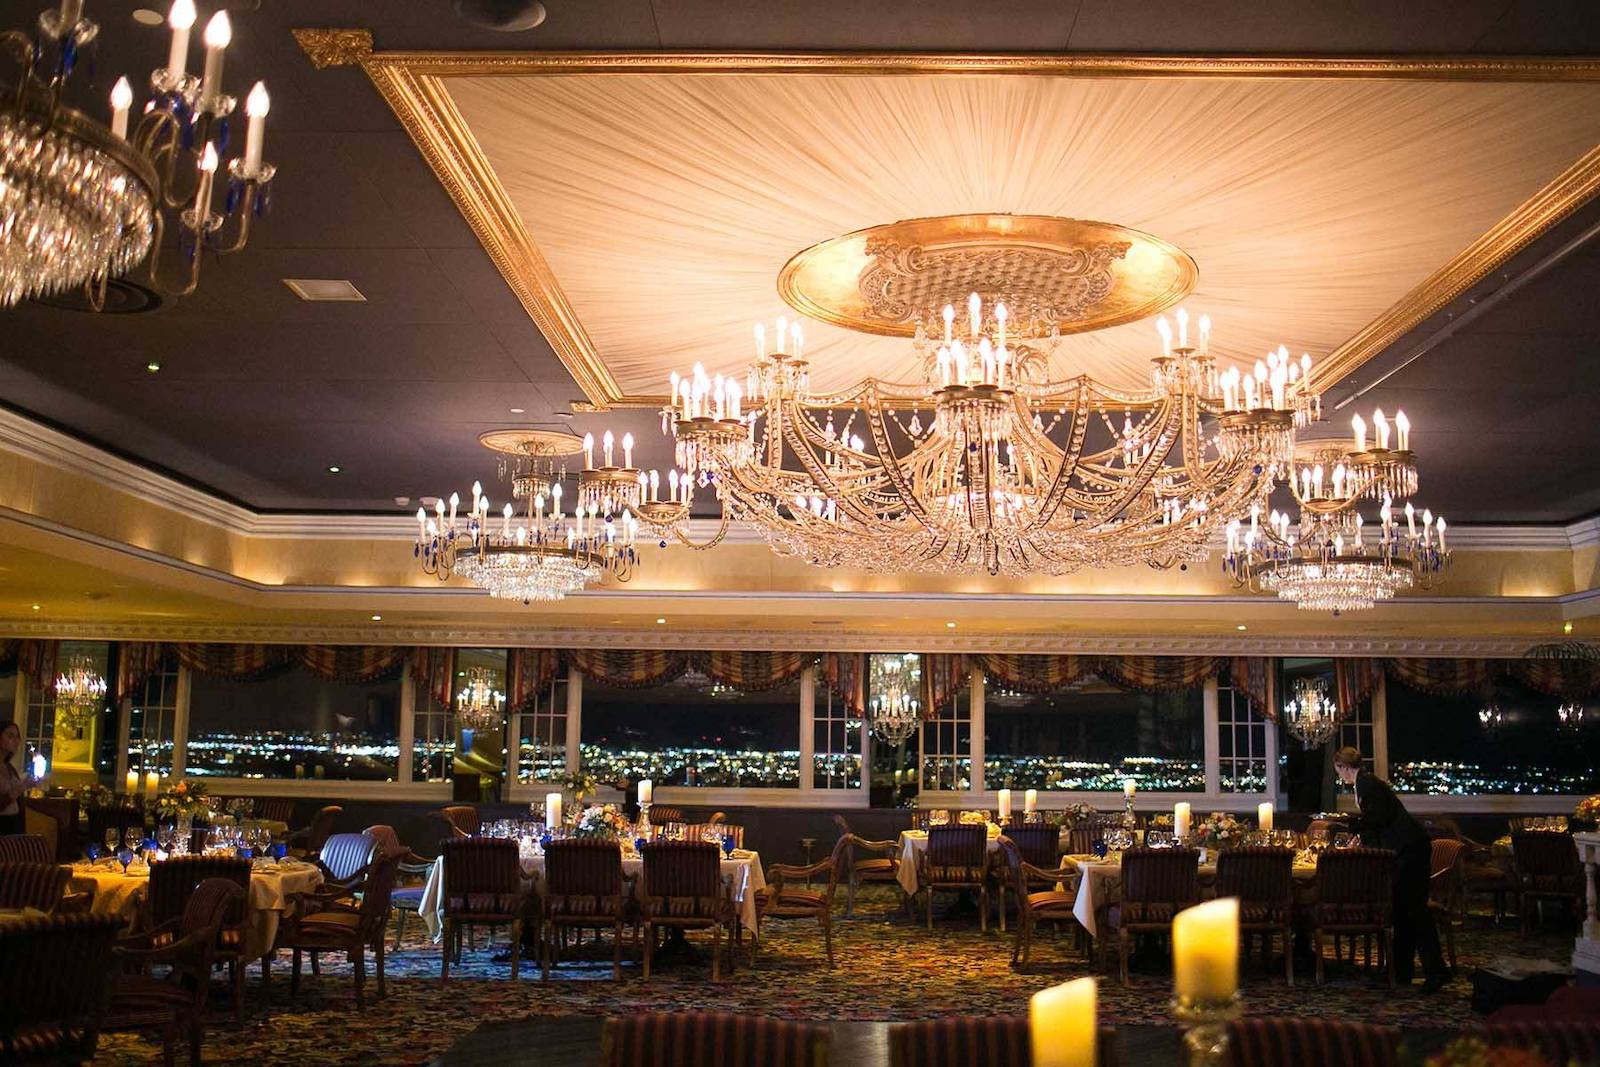 Penrose Room Chandeliers Colorado Springs Fine Dining Restaurant